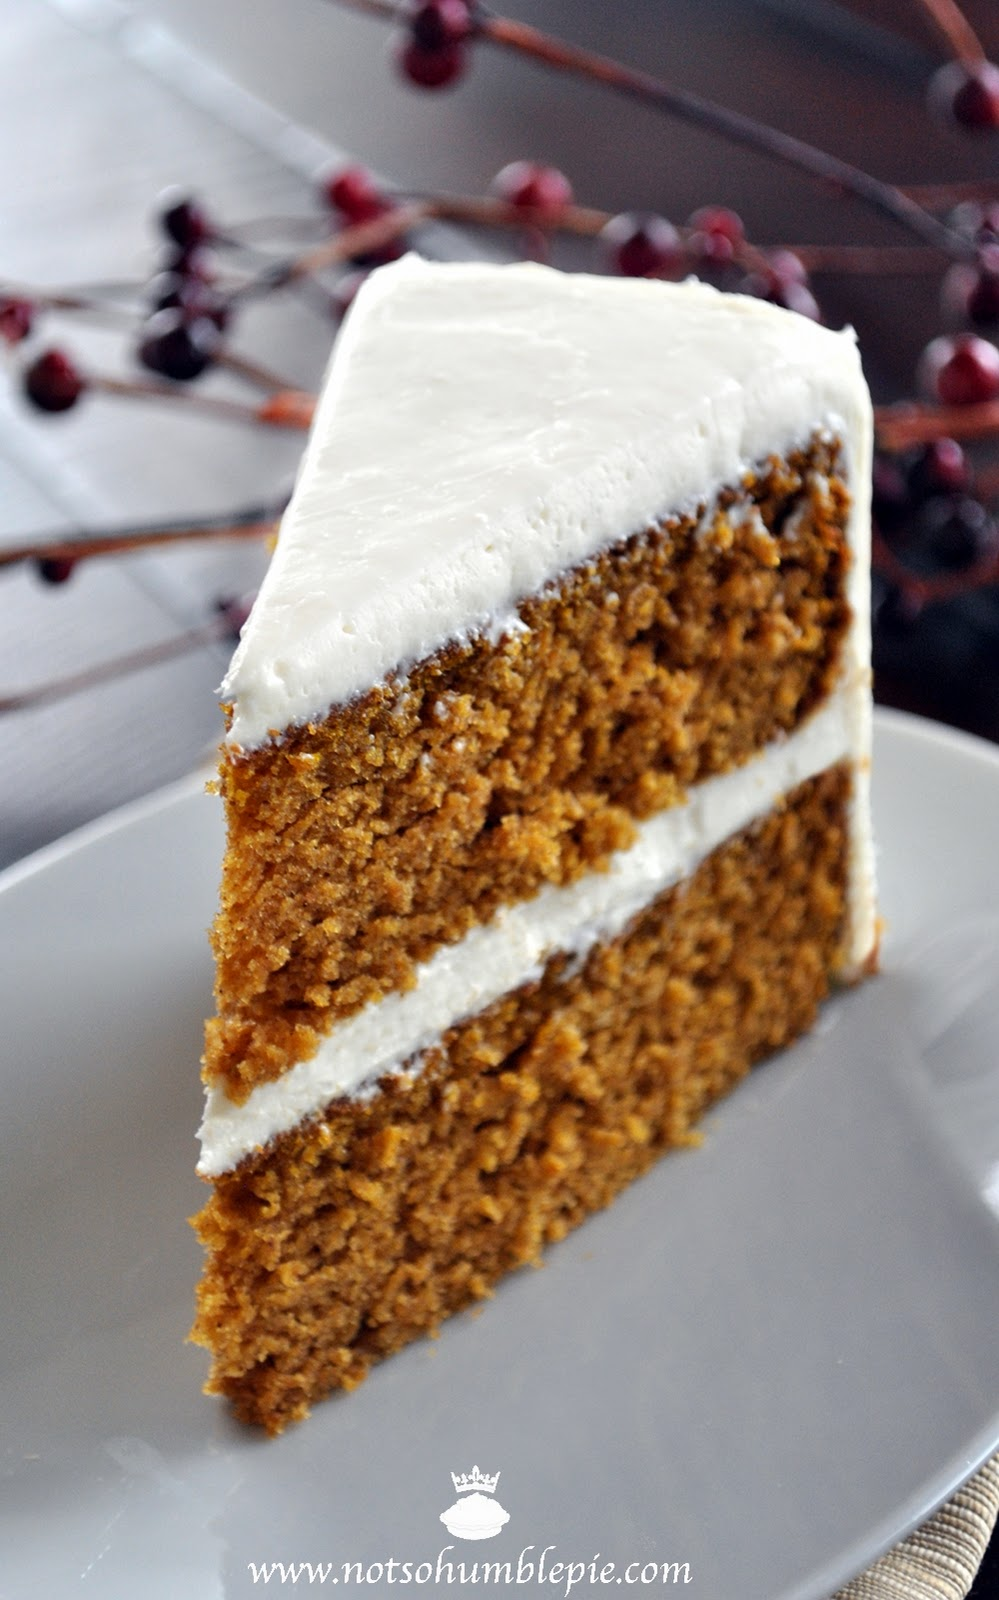 ... So Humble Pie: Pumpkin Spice Cake with Whipped Cream Cheese Frosting